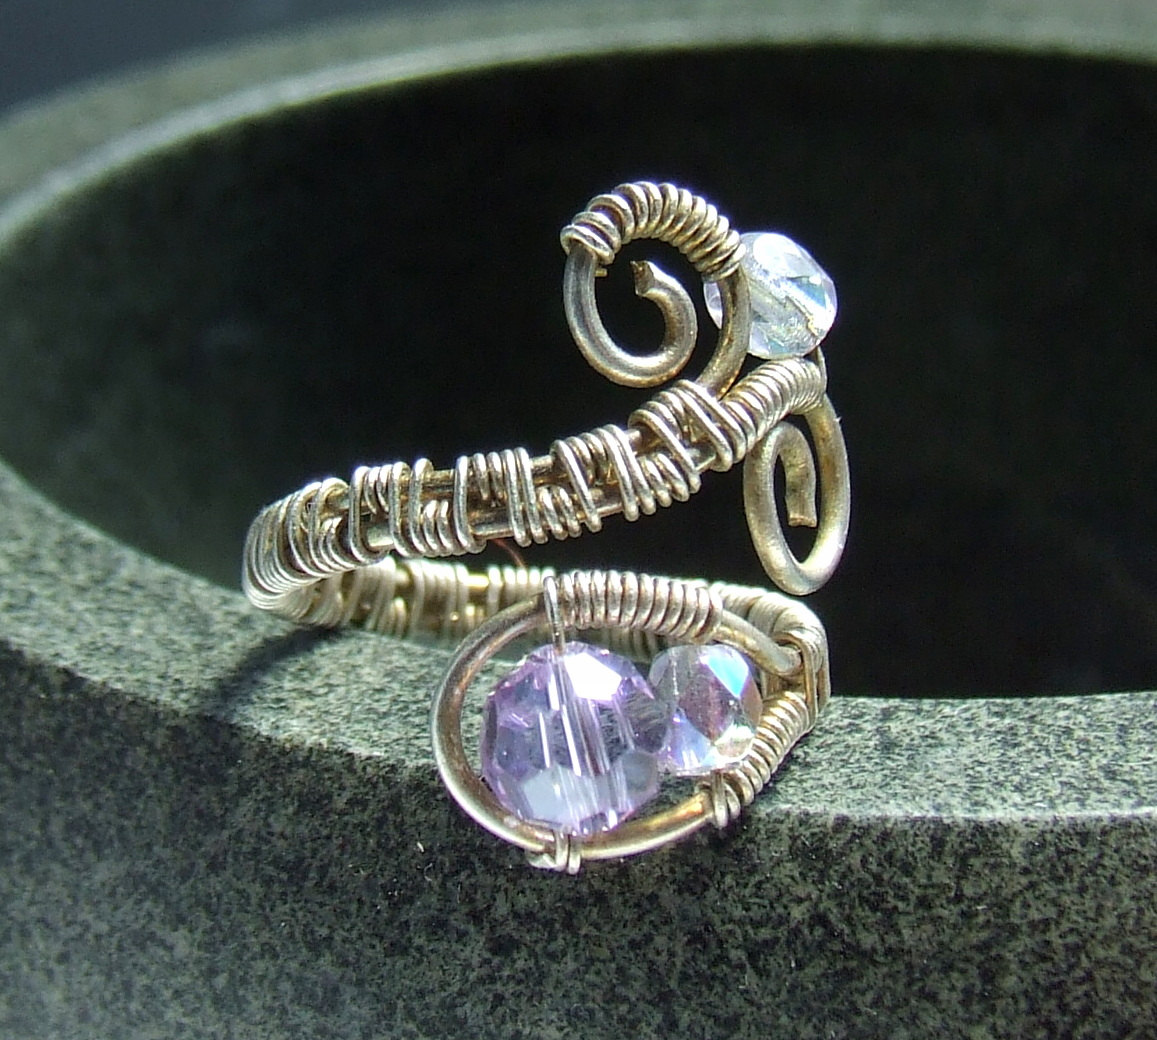 Wire Wrap Jewelry & Bead Shop Start Up Sample Business Plan! By: Scott Proctor